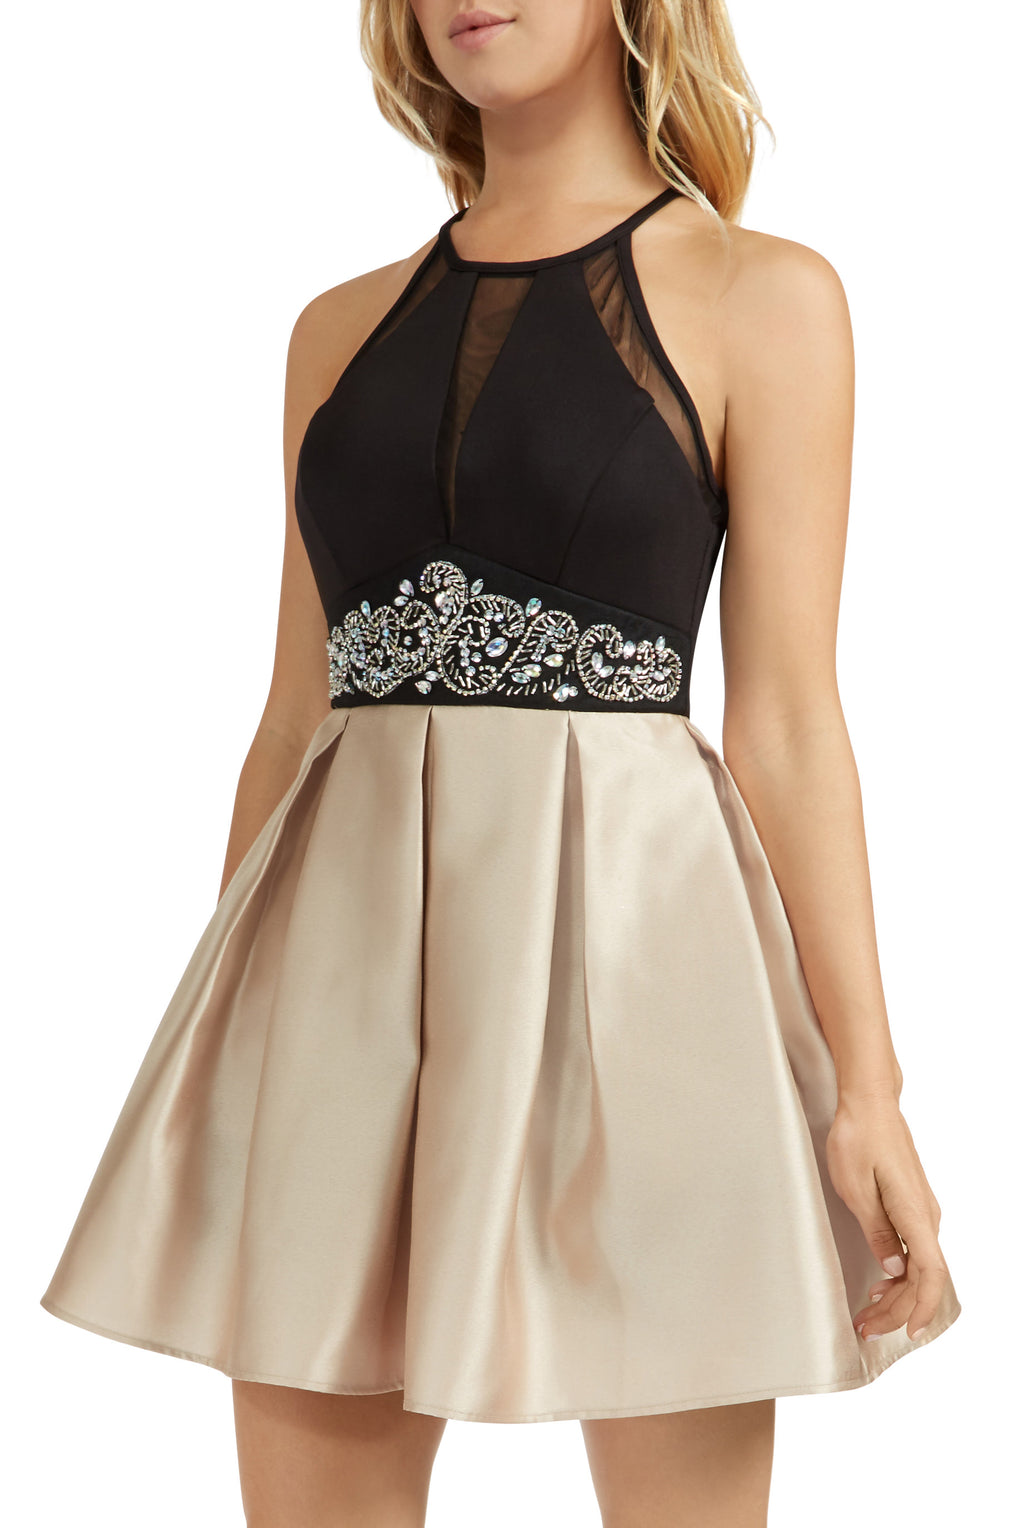 Teeze Me | Sleeveless Halter Top Illusion V Front Beaded Empire Waist Party Dress With Pockets  | Black/Gold